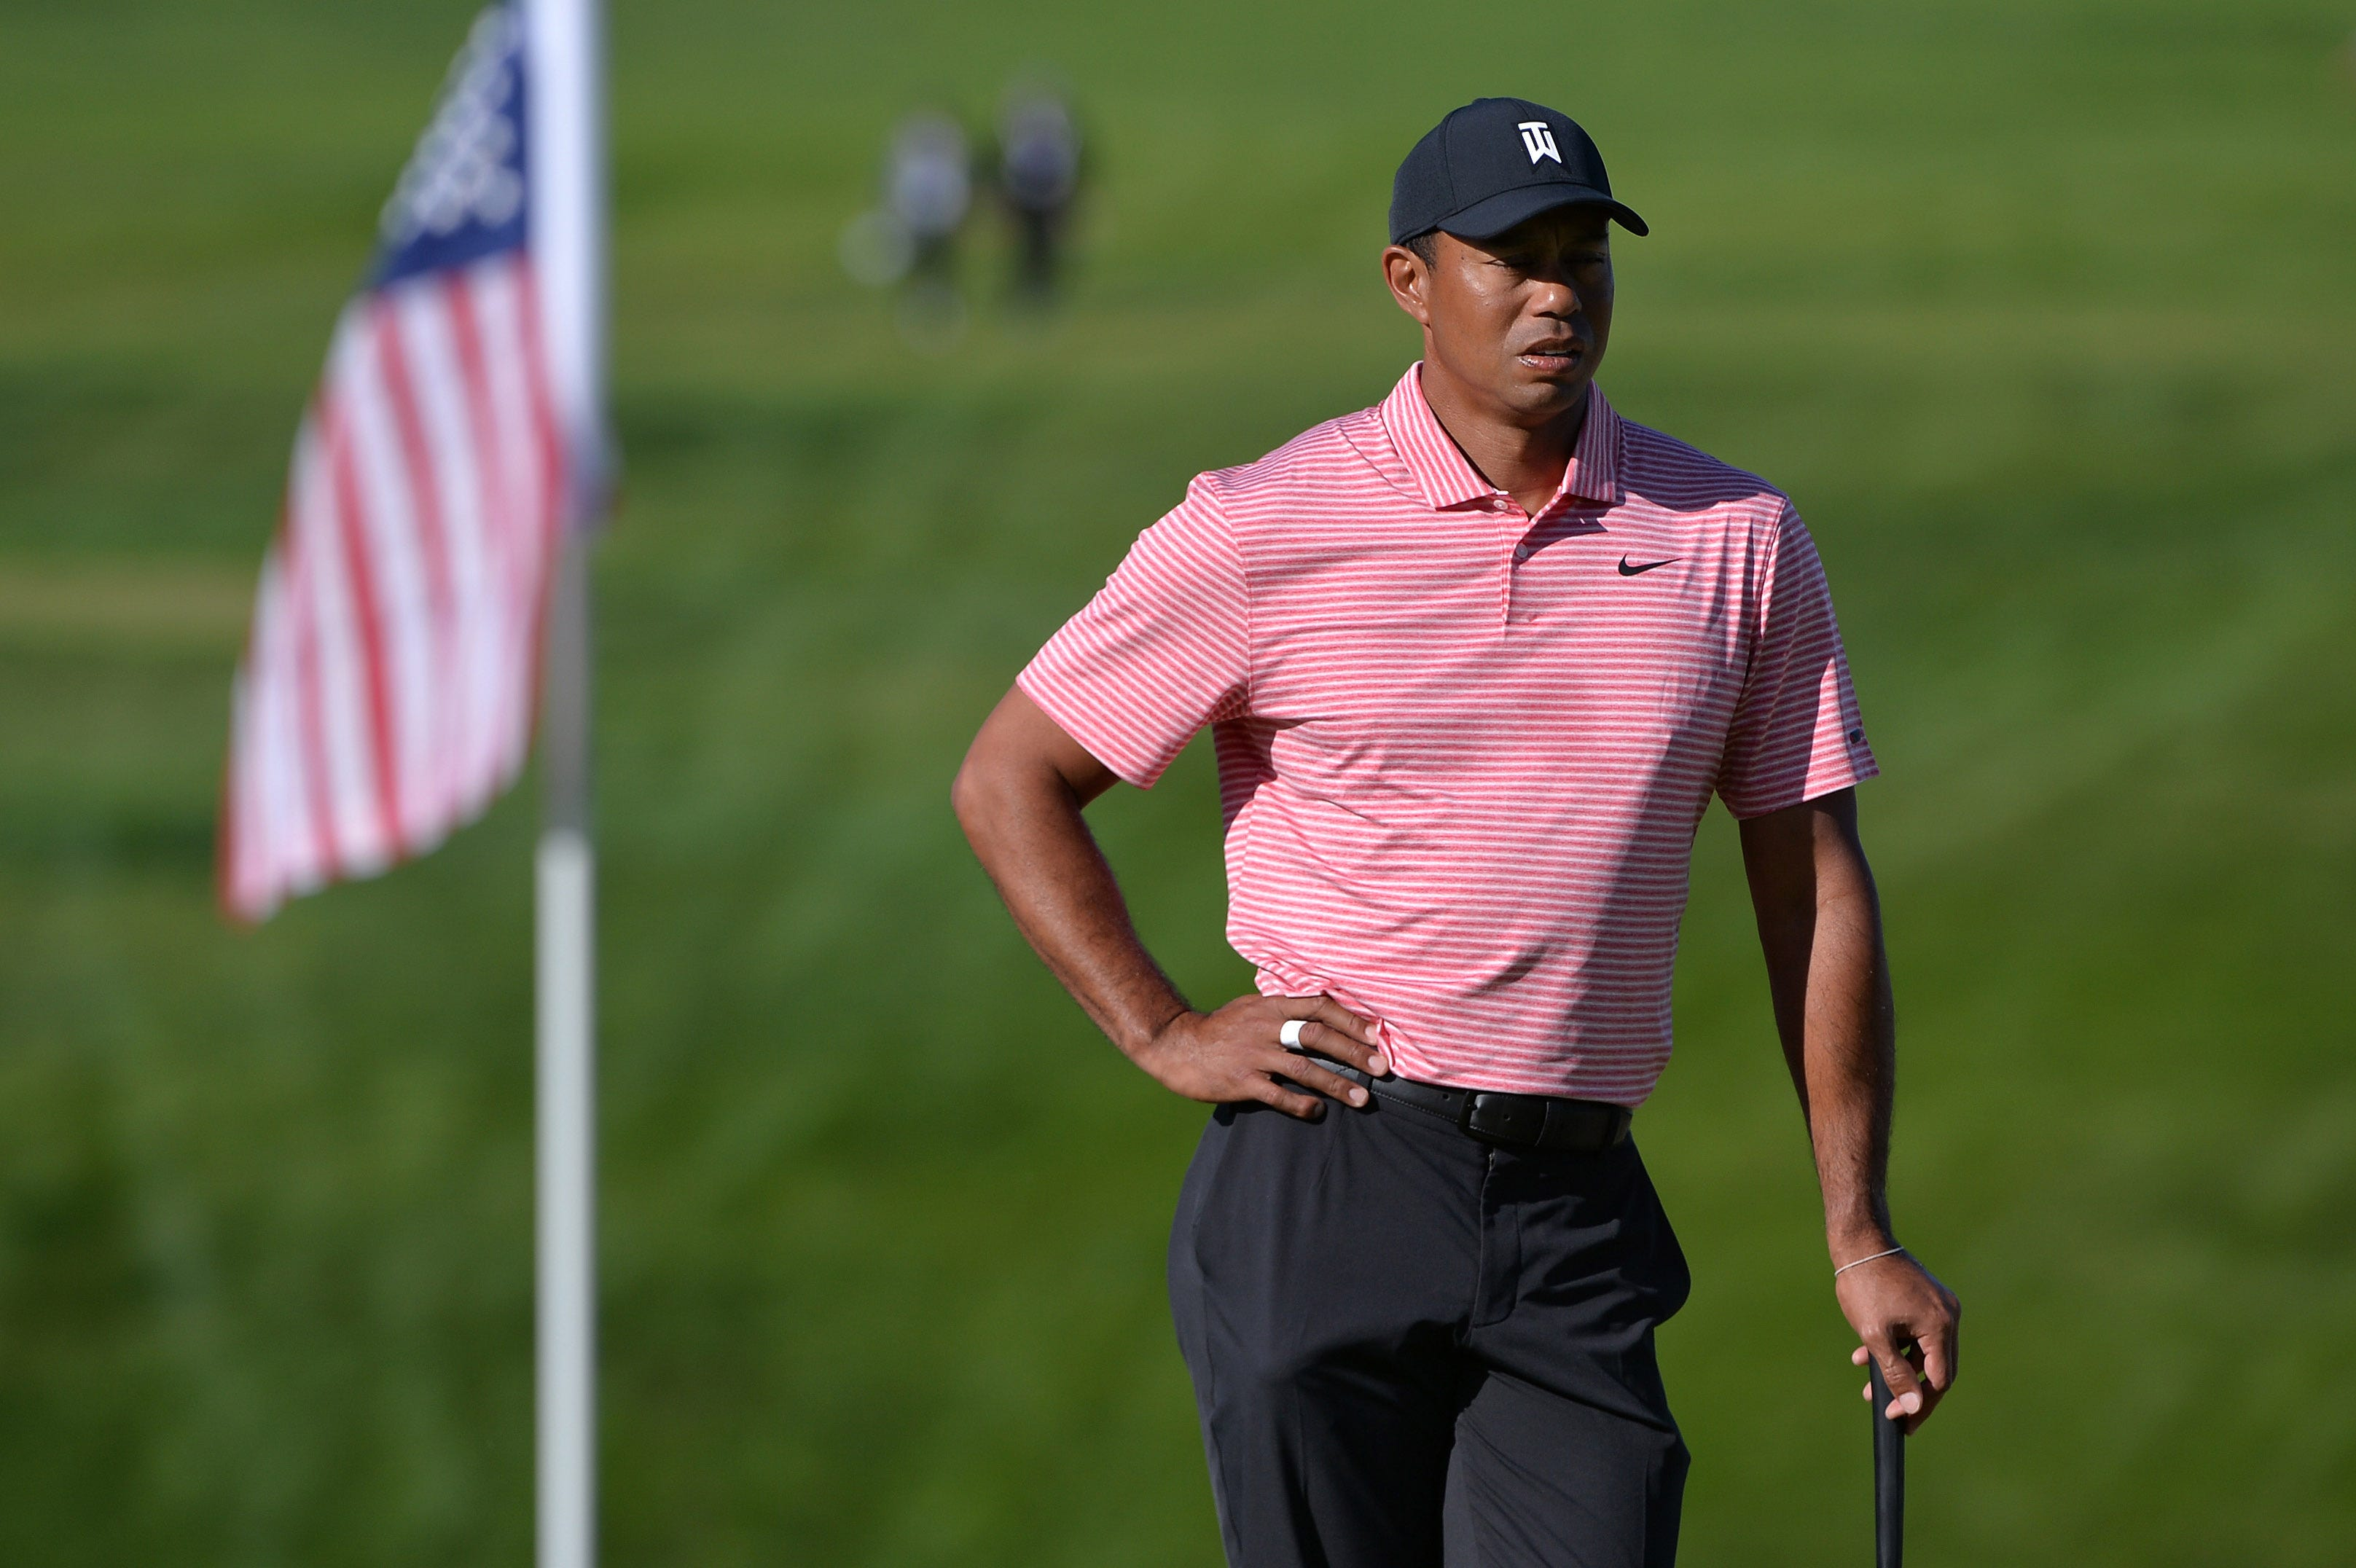 tiger woods gets moral win at torrey pines with late final